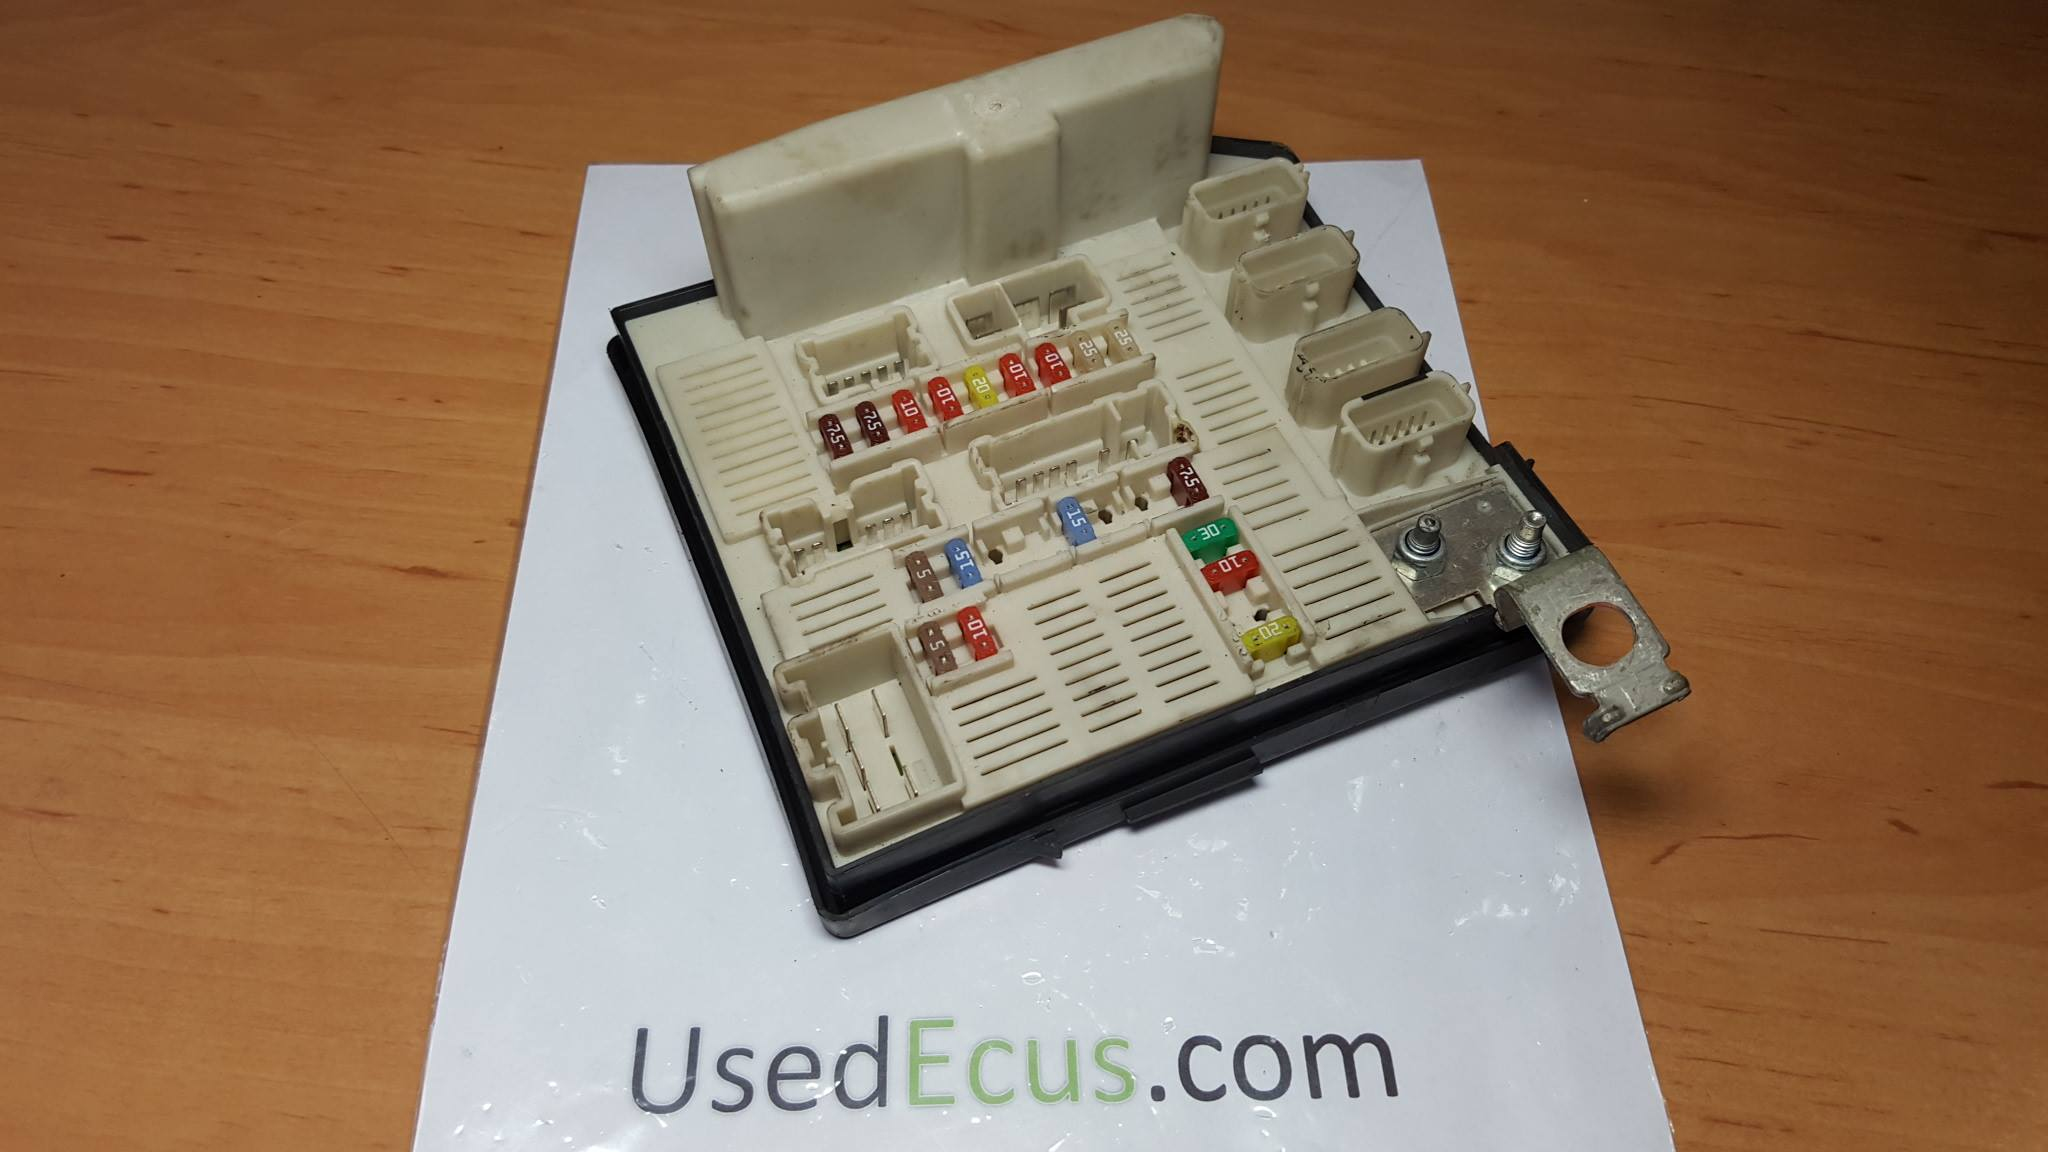 Renault Scenic Fuse Box Problems : Renault megane fuse box john deere tractor wiring